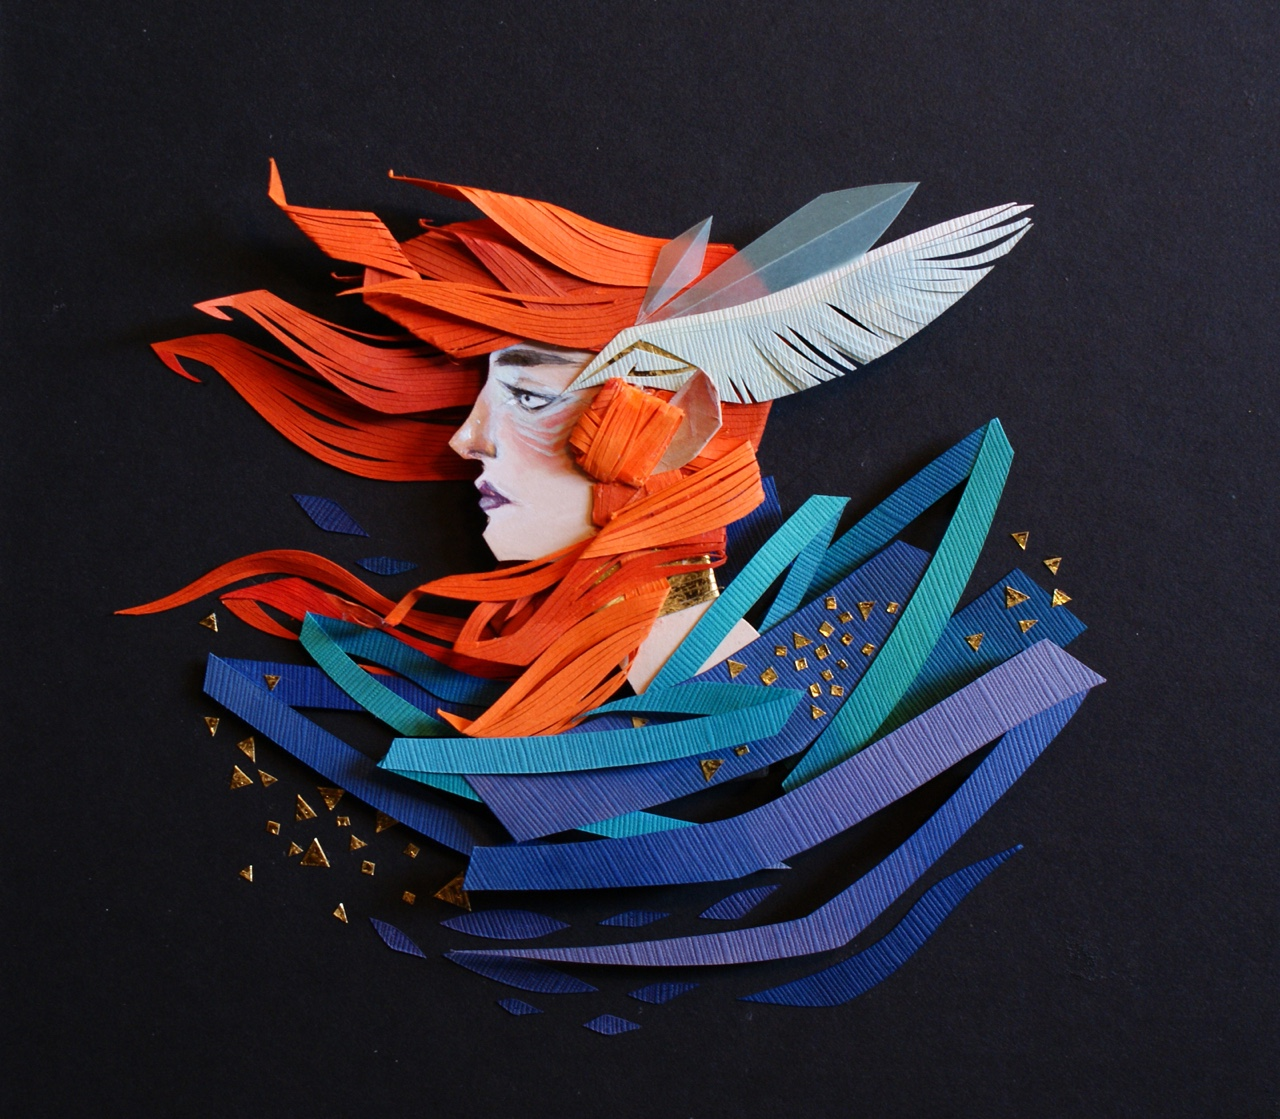 morgana-wallace-vibrant-mythical-scenes-in-cut-paper-collage-strictlypaper-15